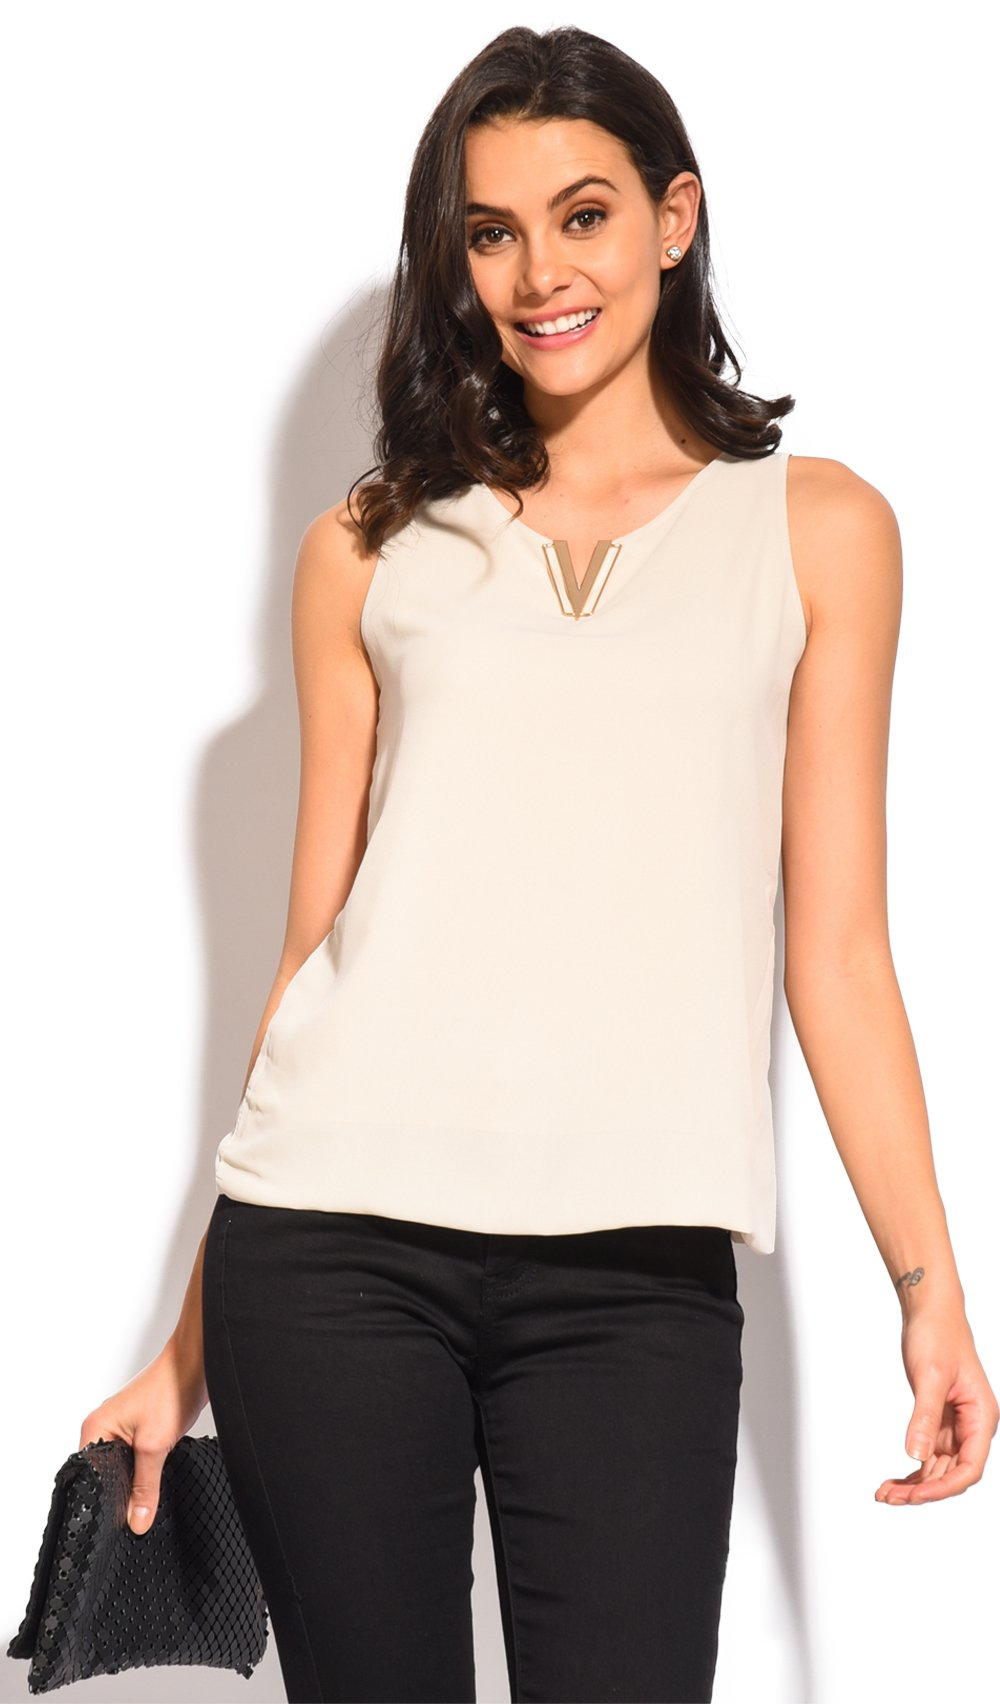 ACCESSORIZED V-NECK TOP WITH DOUBLE-LINING